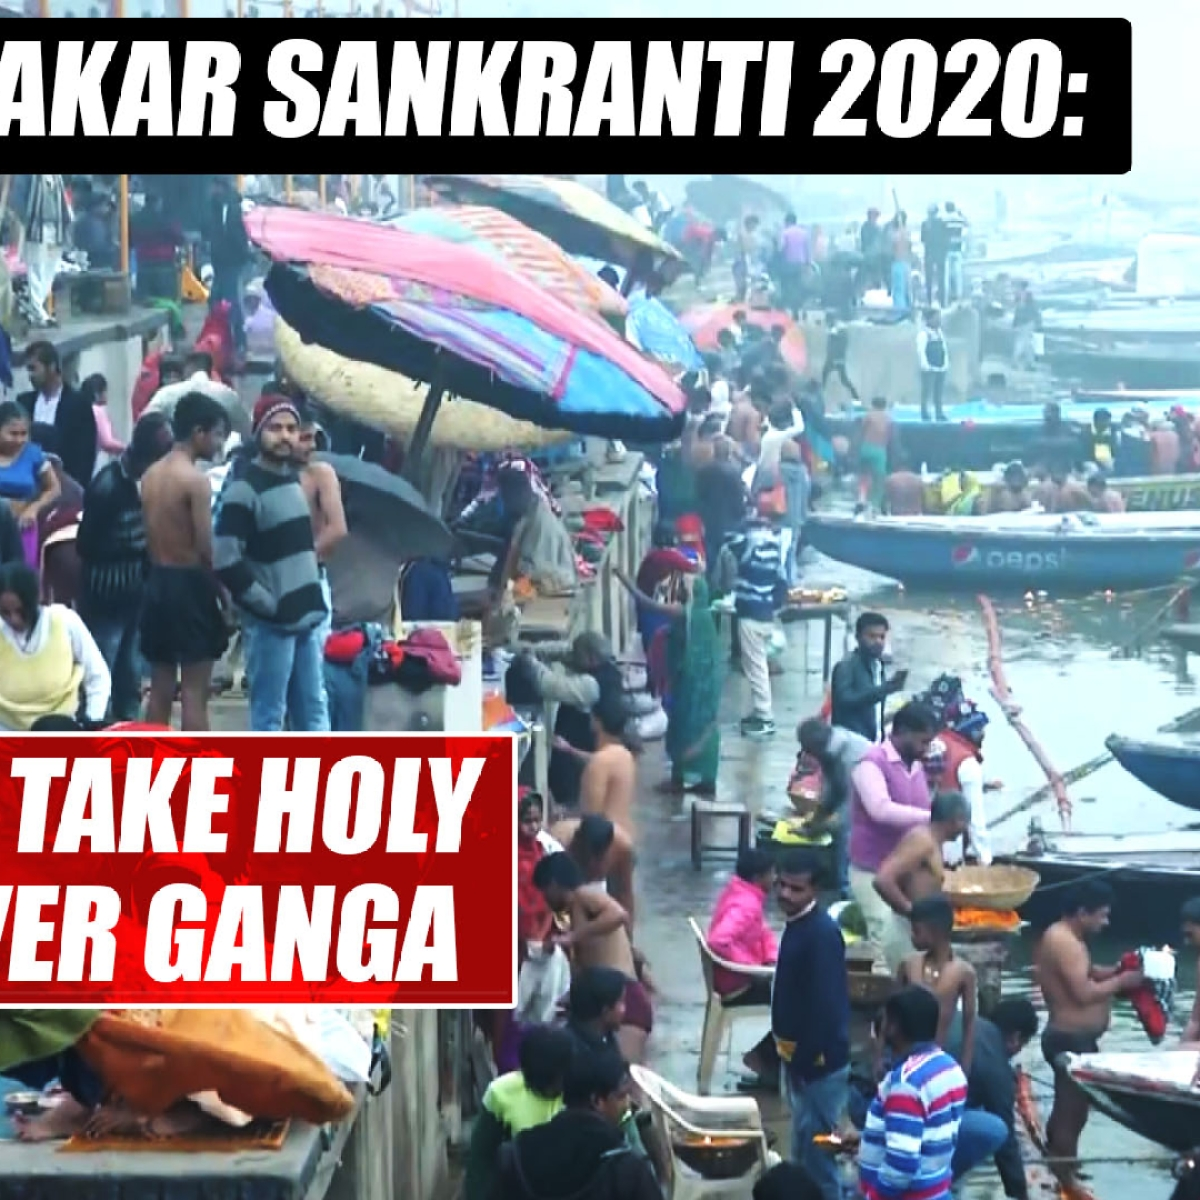 Makar Sankranti 2020: Devotees take holy dip in River Ganga